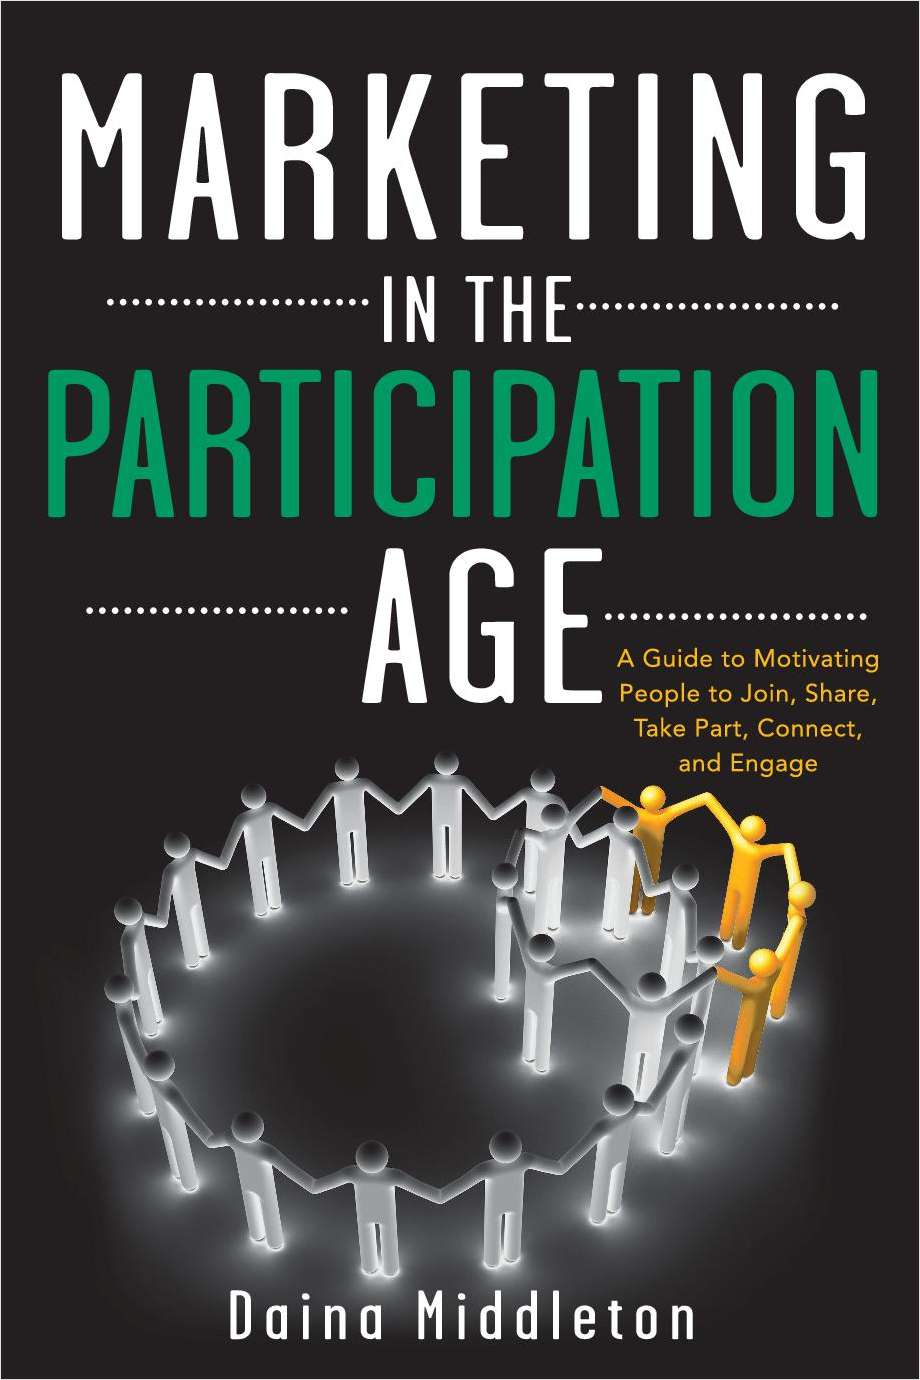 Marketing in the Participation Age: A Guide to Motivating People to Join, Share, Take Part, Connect, and Engage-- Complimentary Excerpt